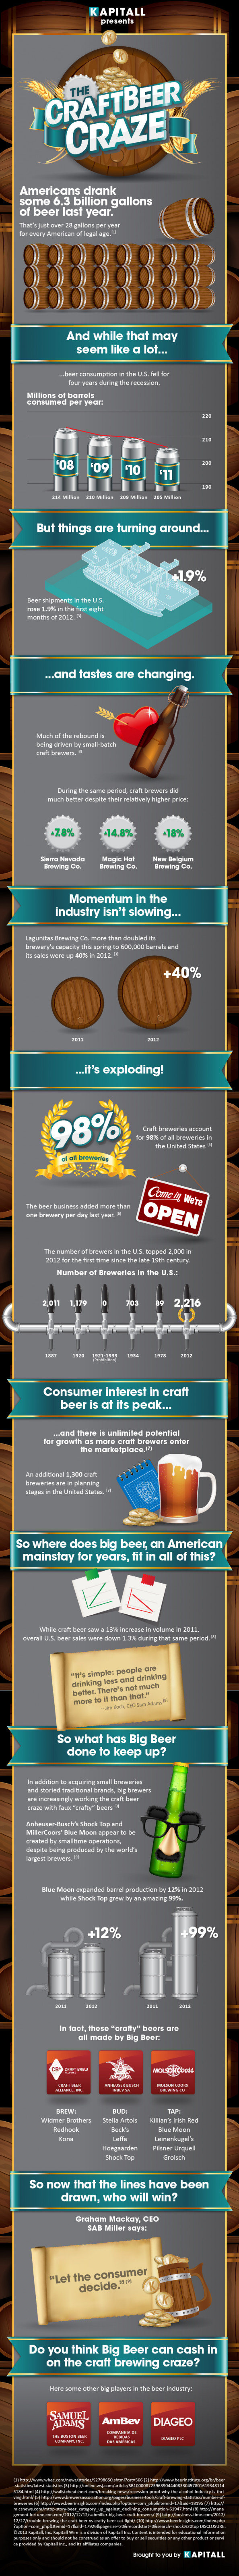 The Craft Beer Craze Infographic